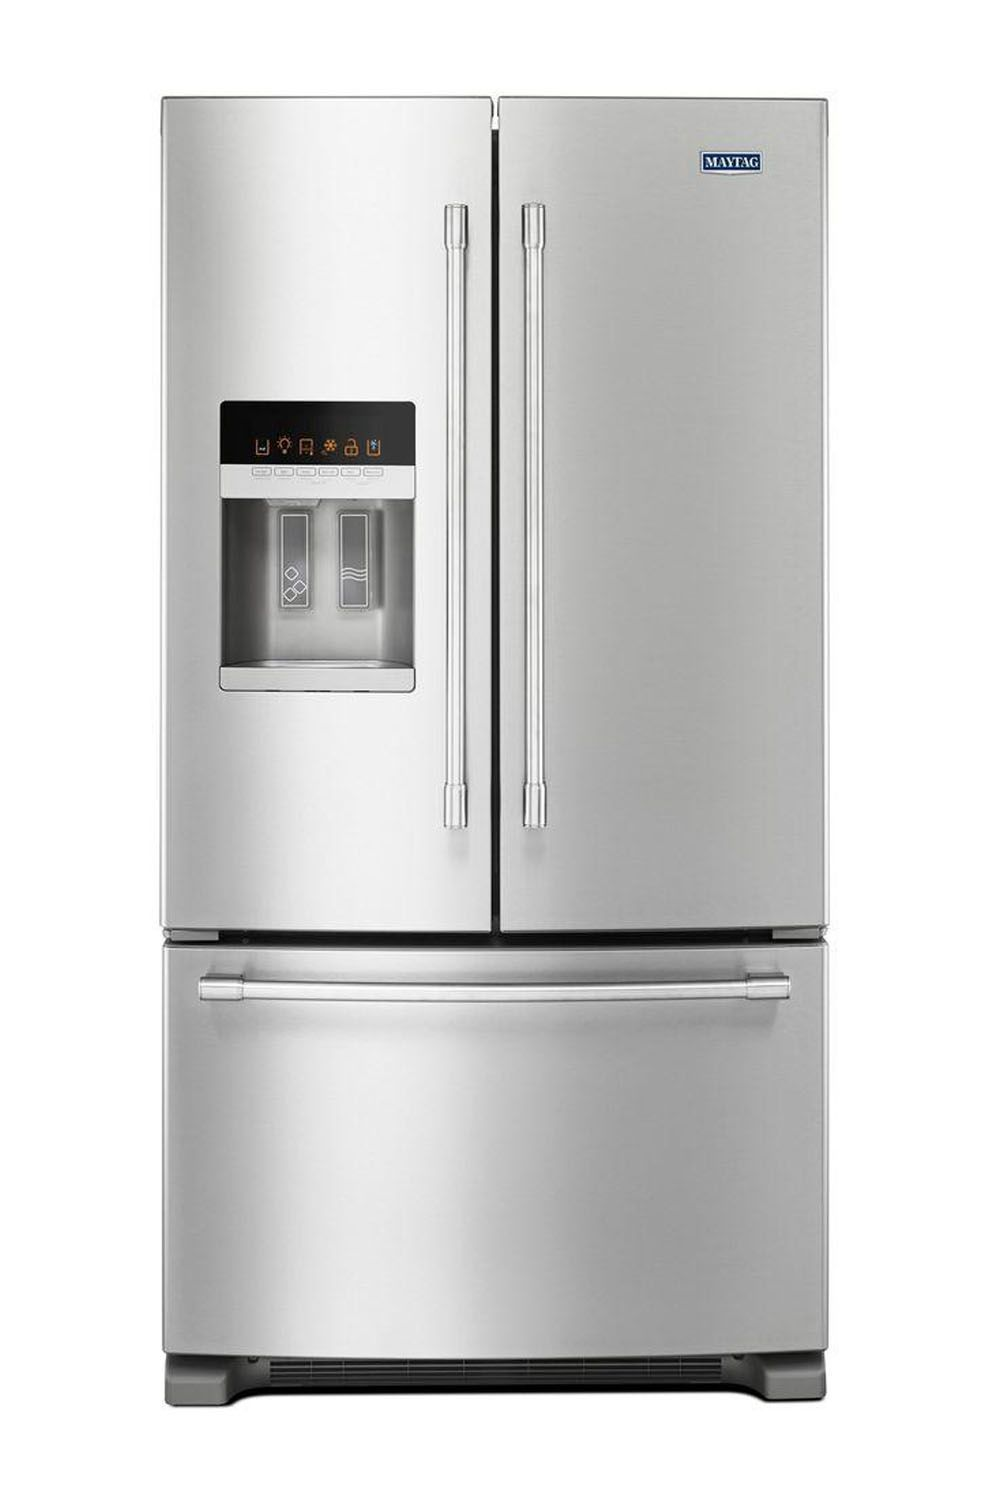 Maytag Wide French Door Refrigerator on